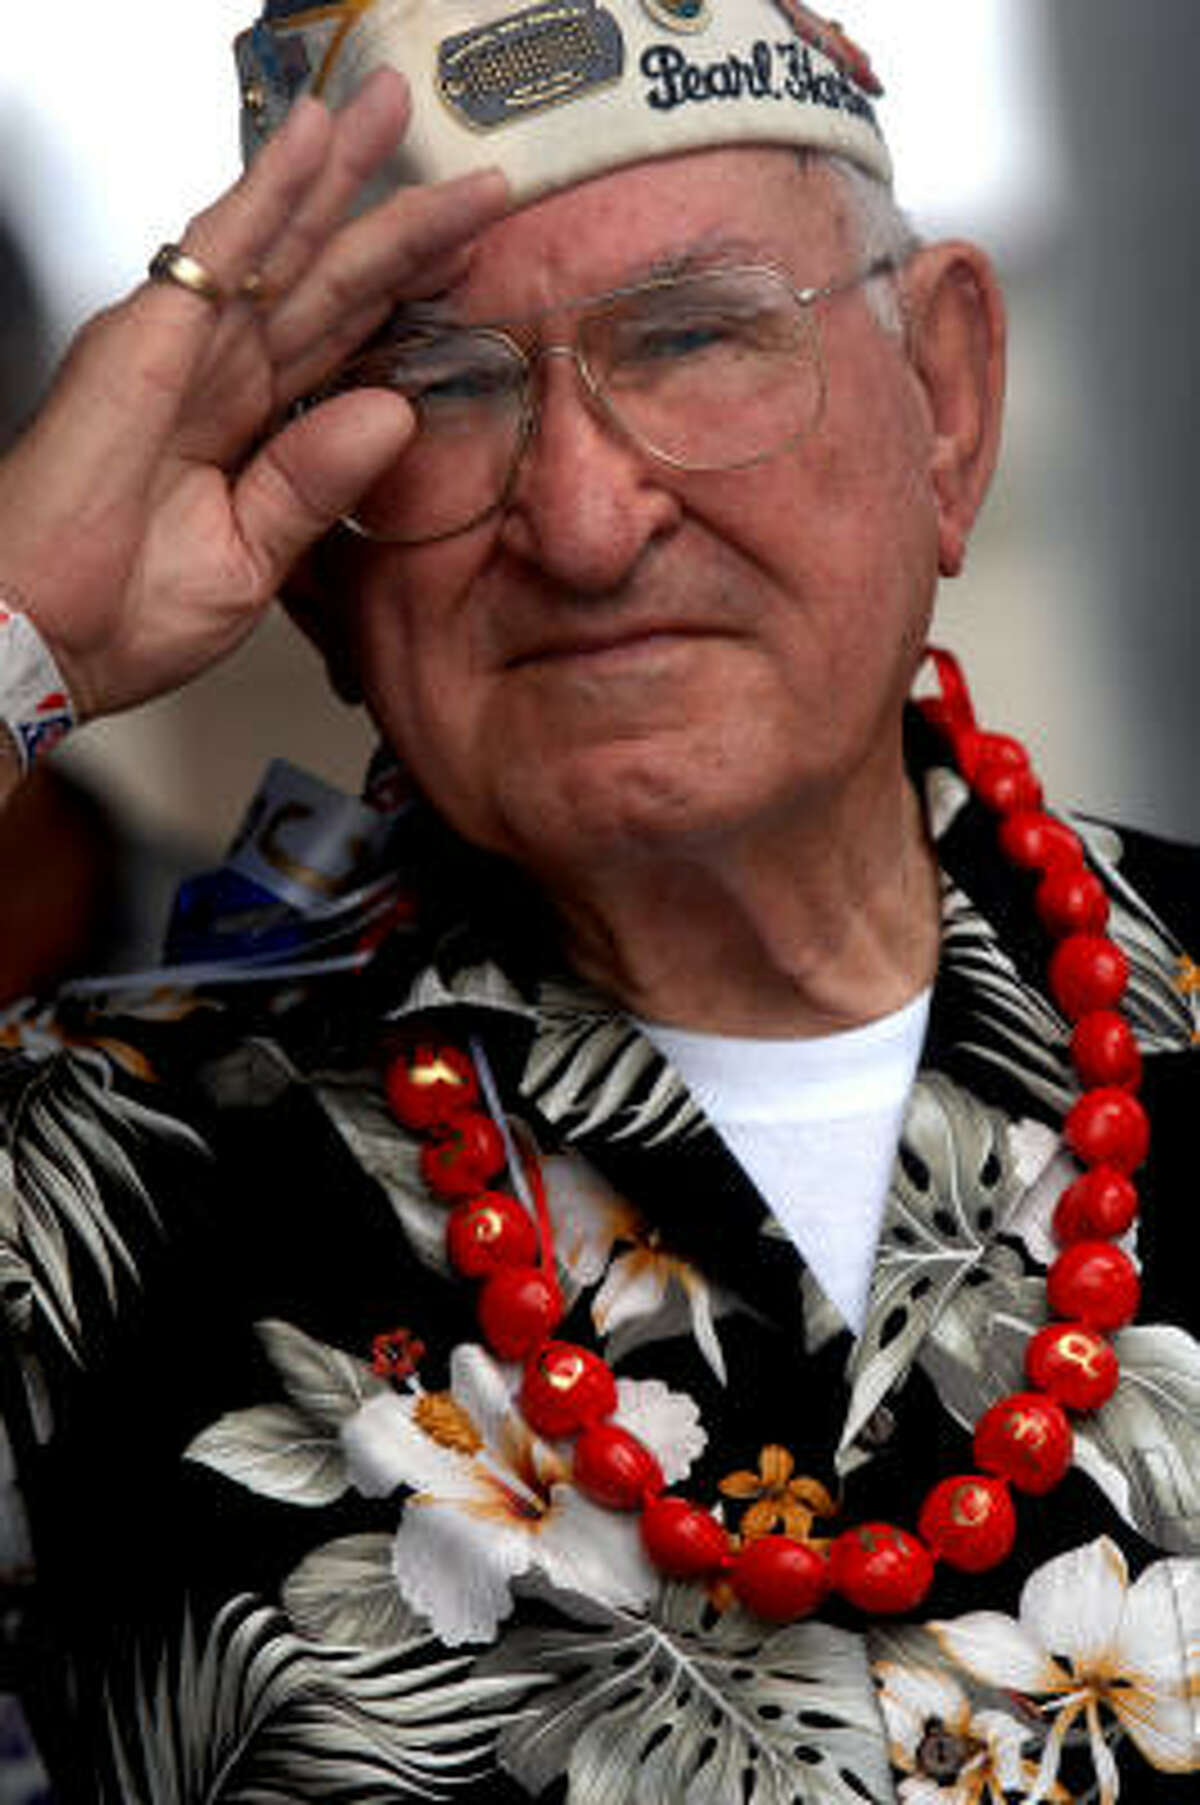 Lewis Egnatovick, 86, of Lake City, Florida salutes during the commemoration marking the 66th anniversary of Pearl Harbor attack December 7, 2007 in Pearl Harbor, Hawaii.